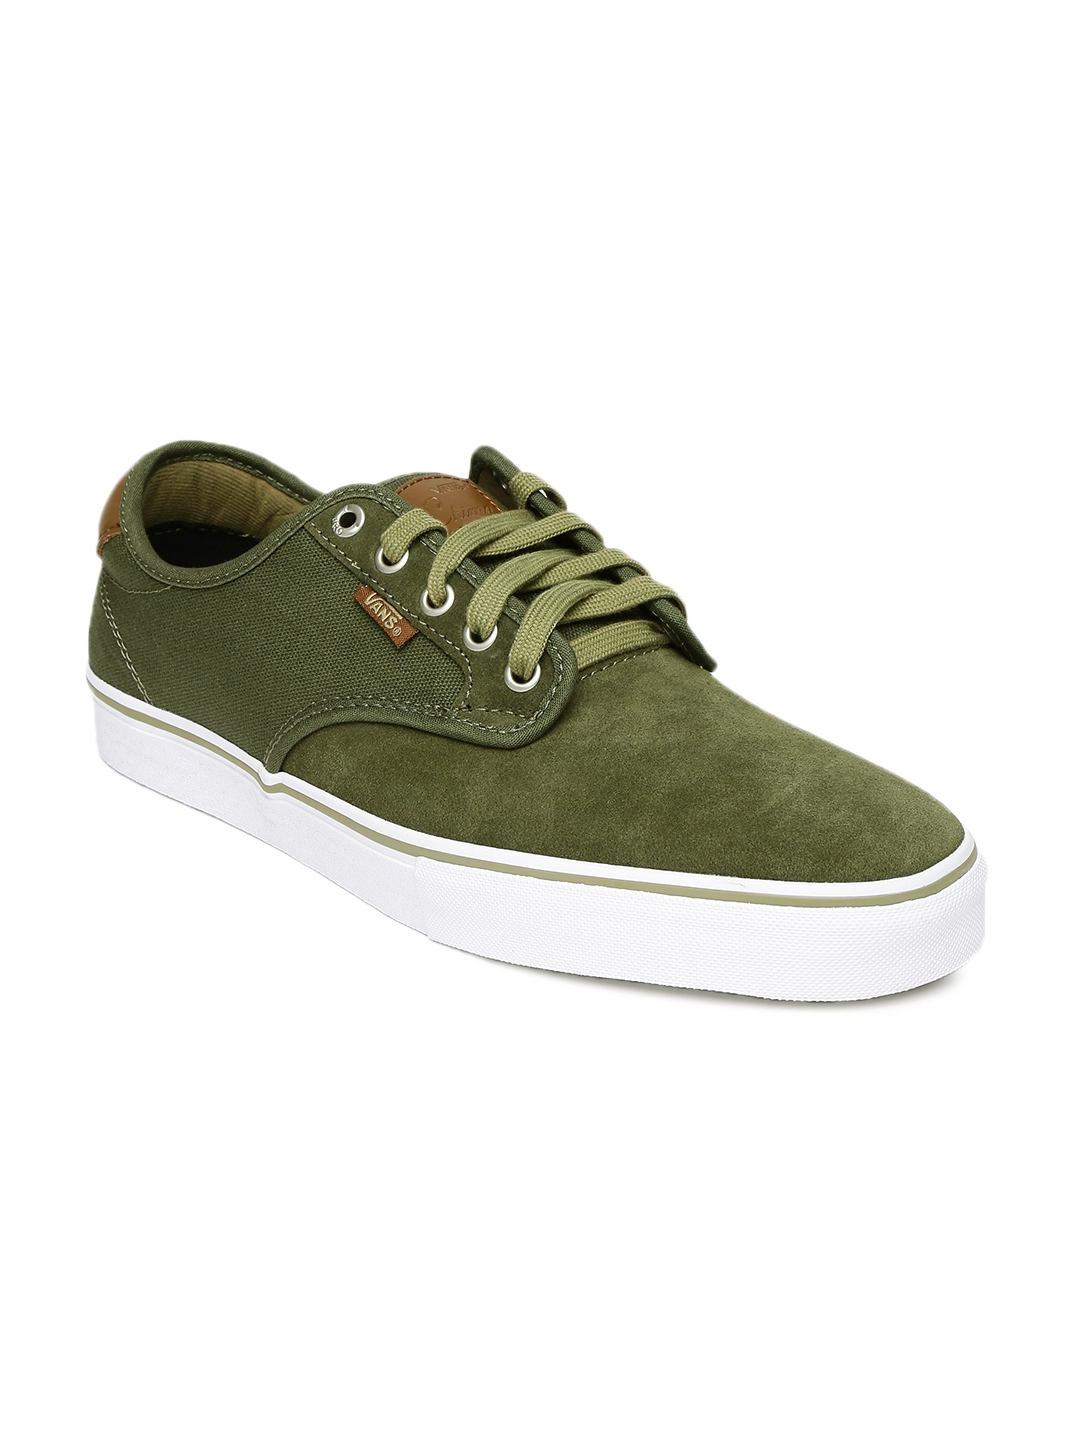 e4f8f46e16 Buy Vans Men Olive Green Chima Ferguson Pro Skate Shoes - Casual ...